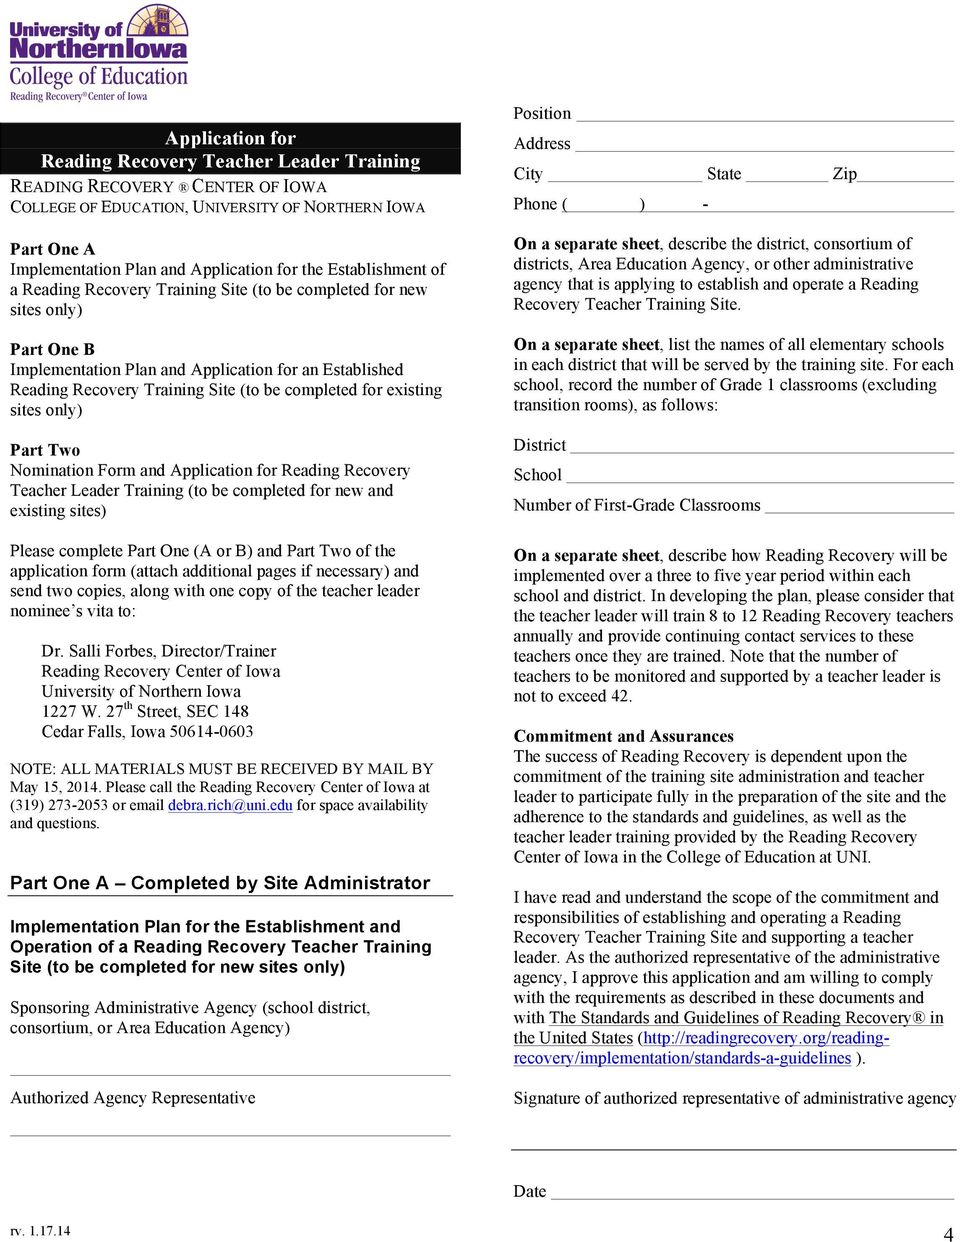 Reading Recovery Teacher Leader Training Application